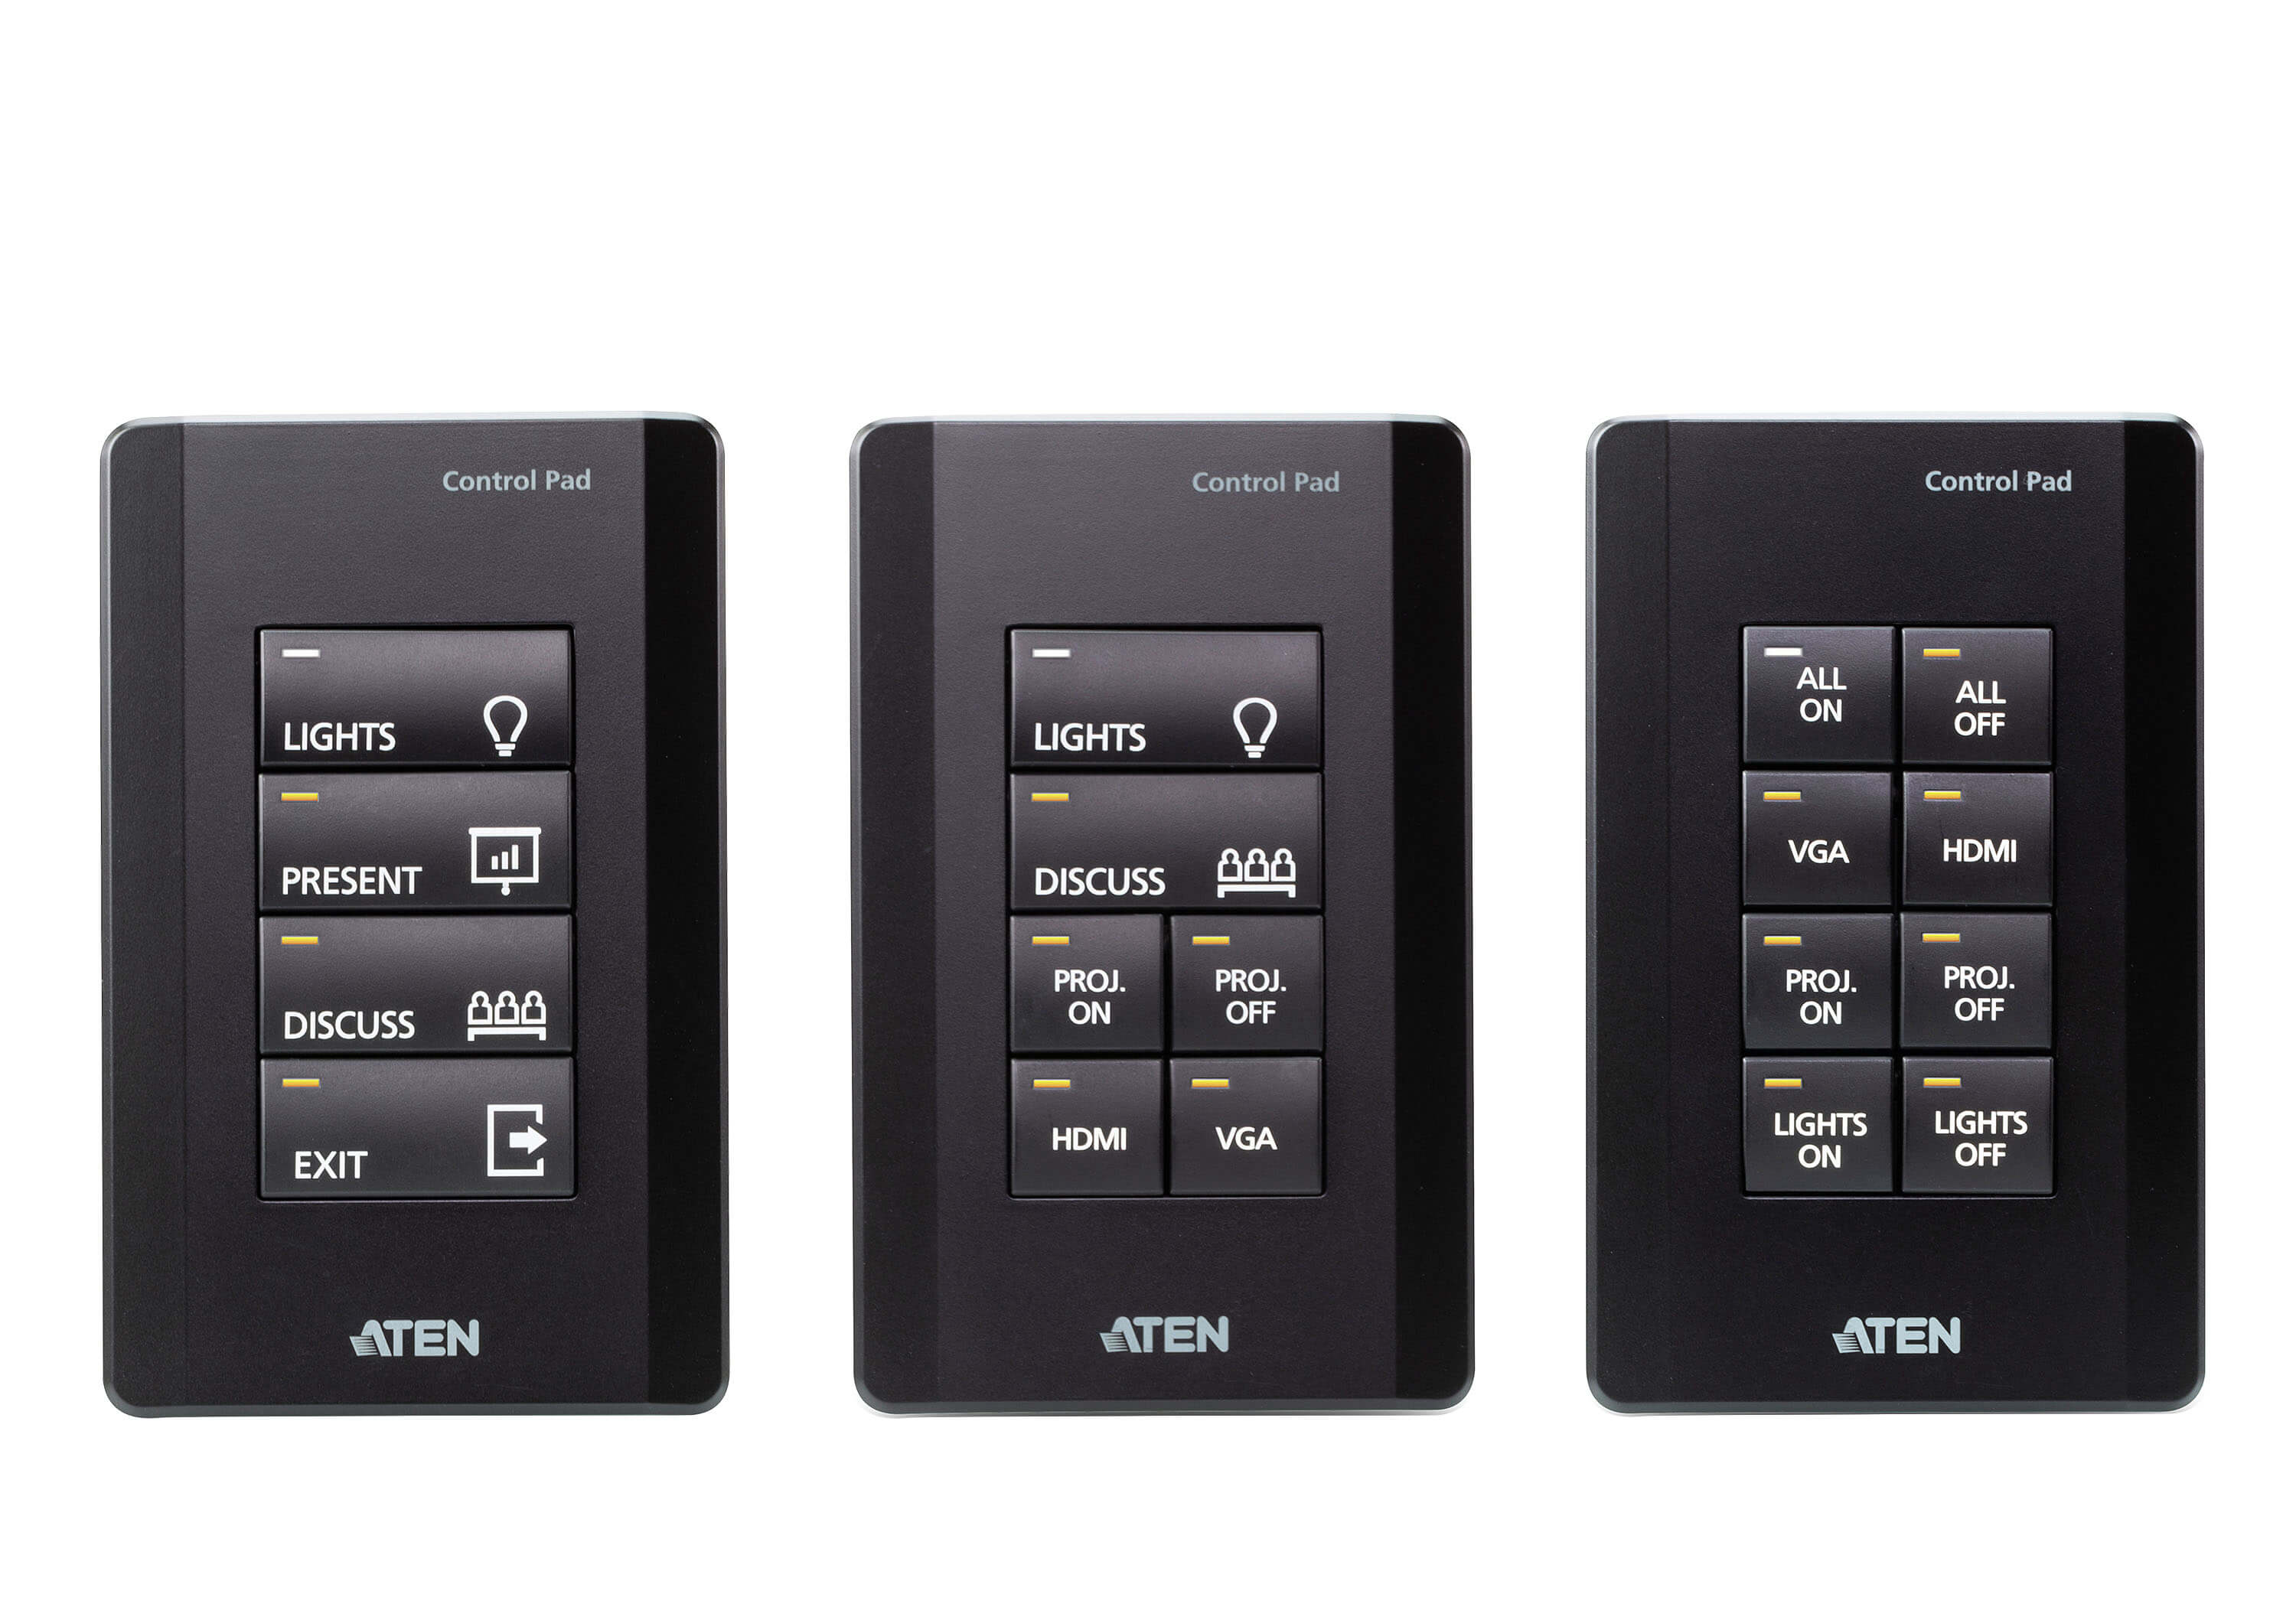 ATEN Control System - 8-button Control Pad (US, 1 Gang)-3